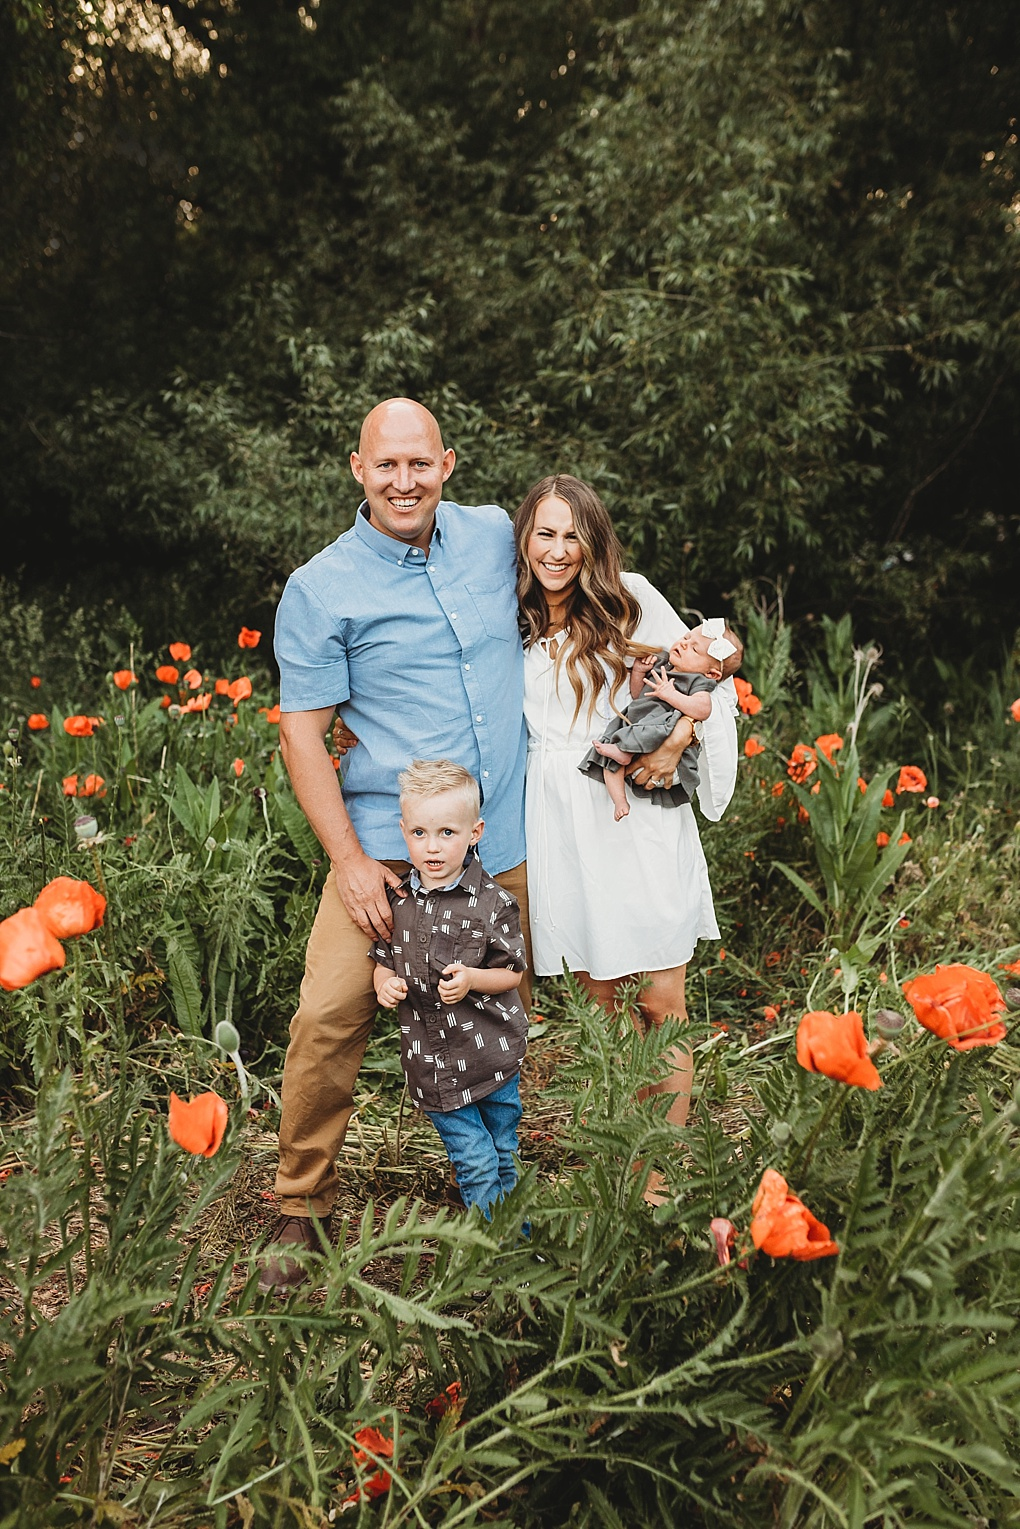 Bookmark this post ASAP if you need help planning your family photo. Utah Style Blogger Dani Marie is sharing her tip family photo outfit ideas here!